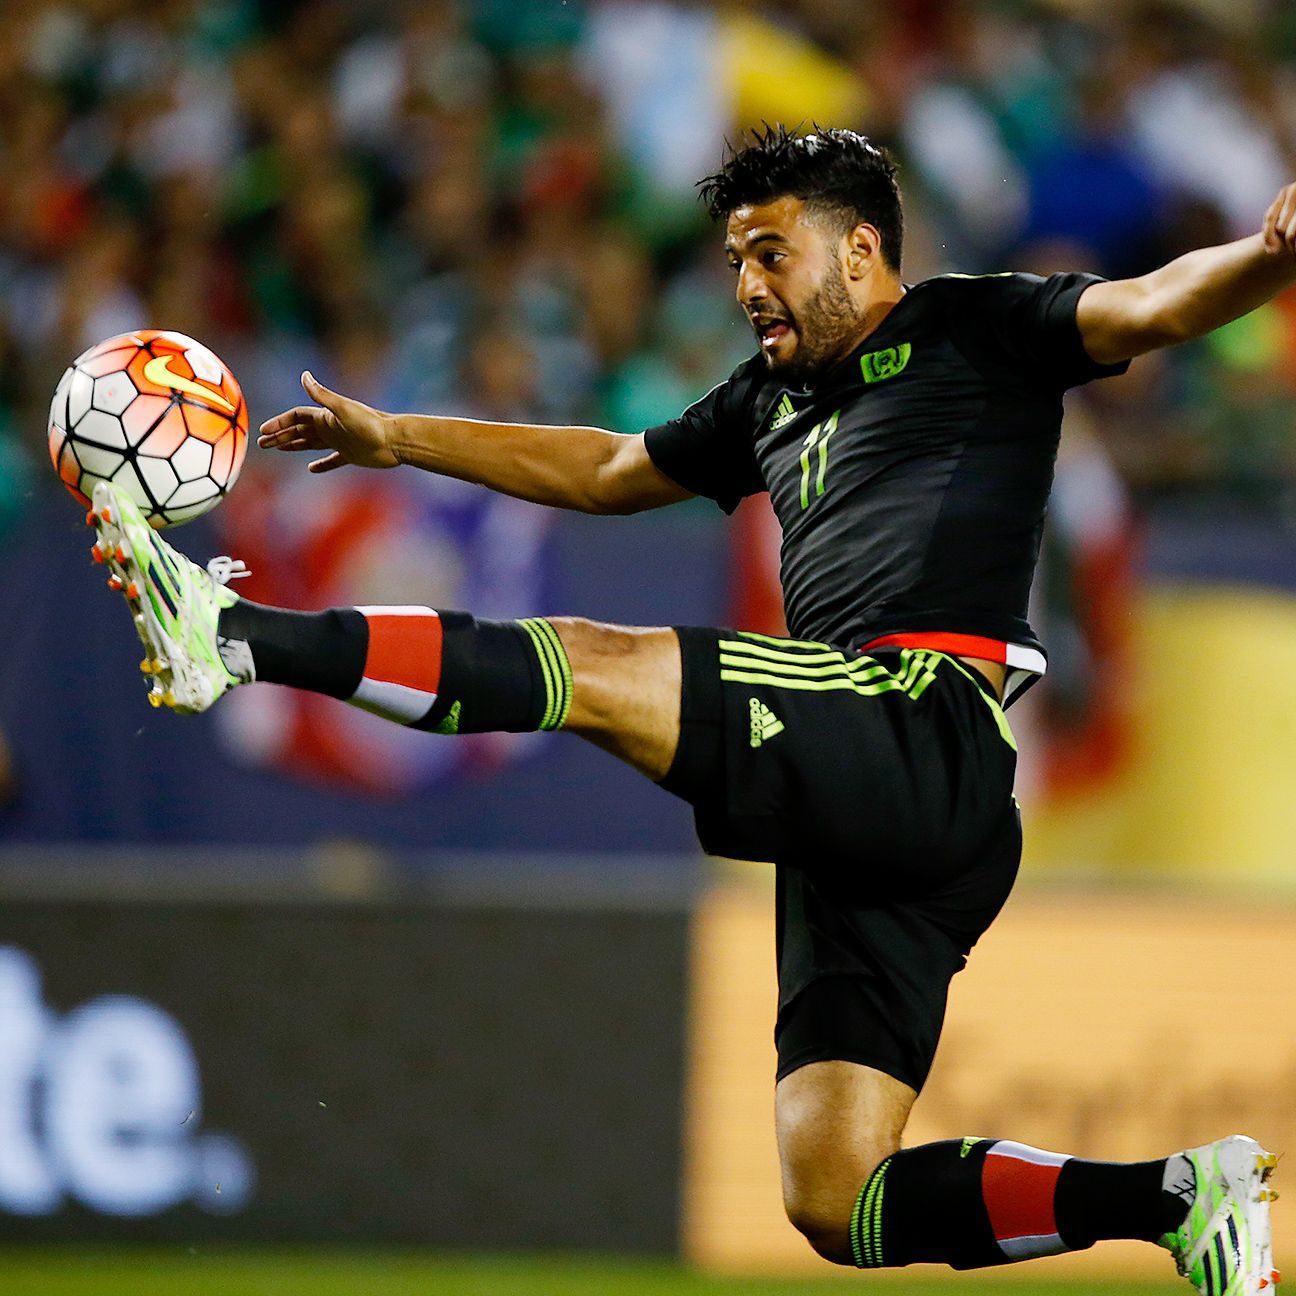 Carlos Vela scored his first goal in an official match for Mexico since a 2010 World Cup qualifier.